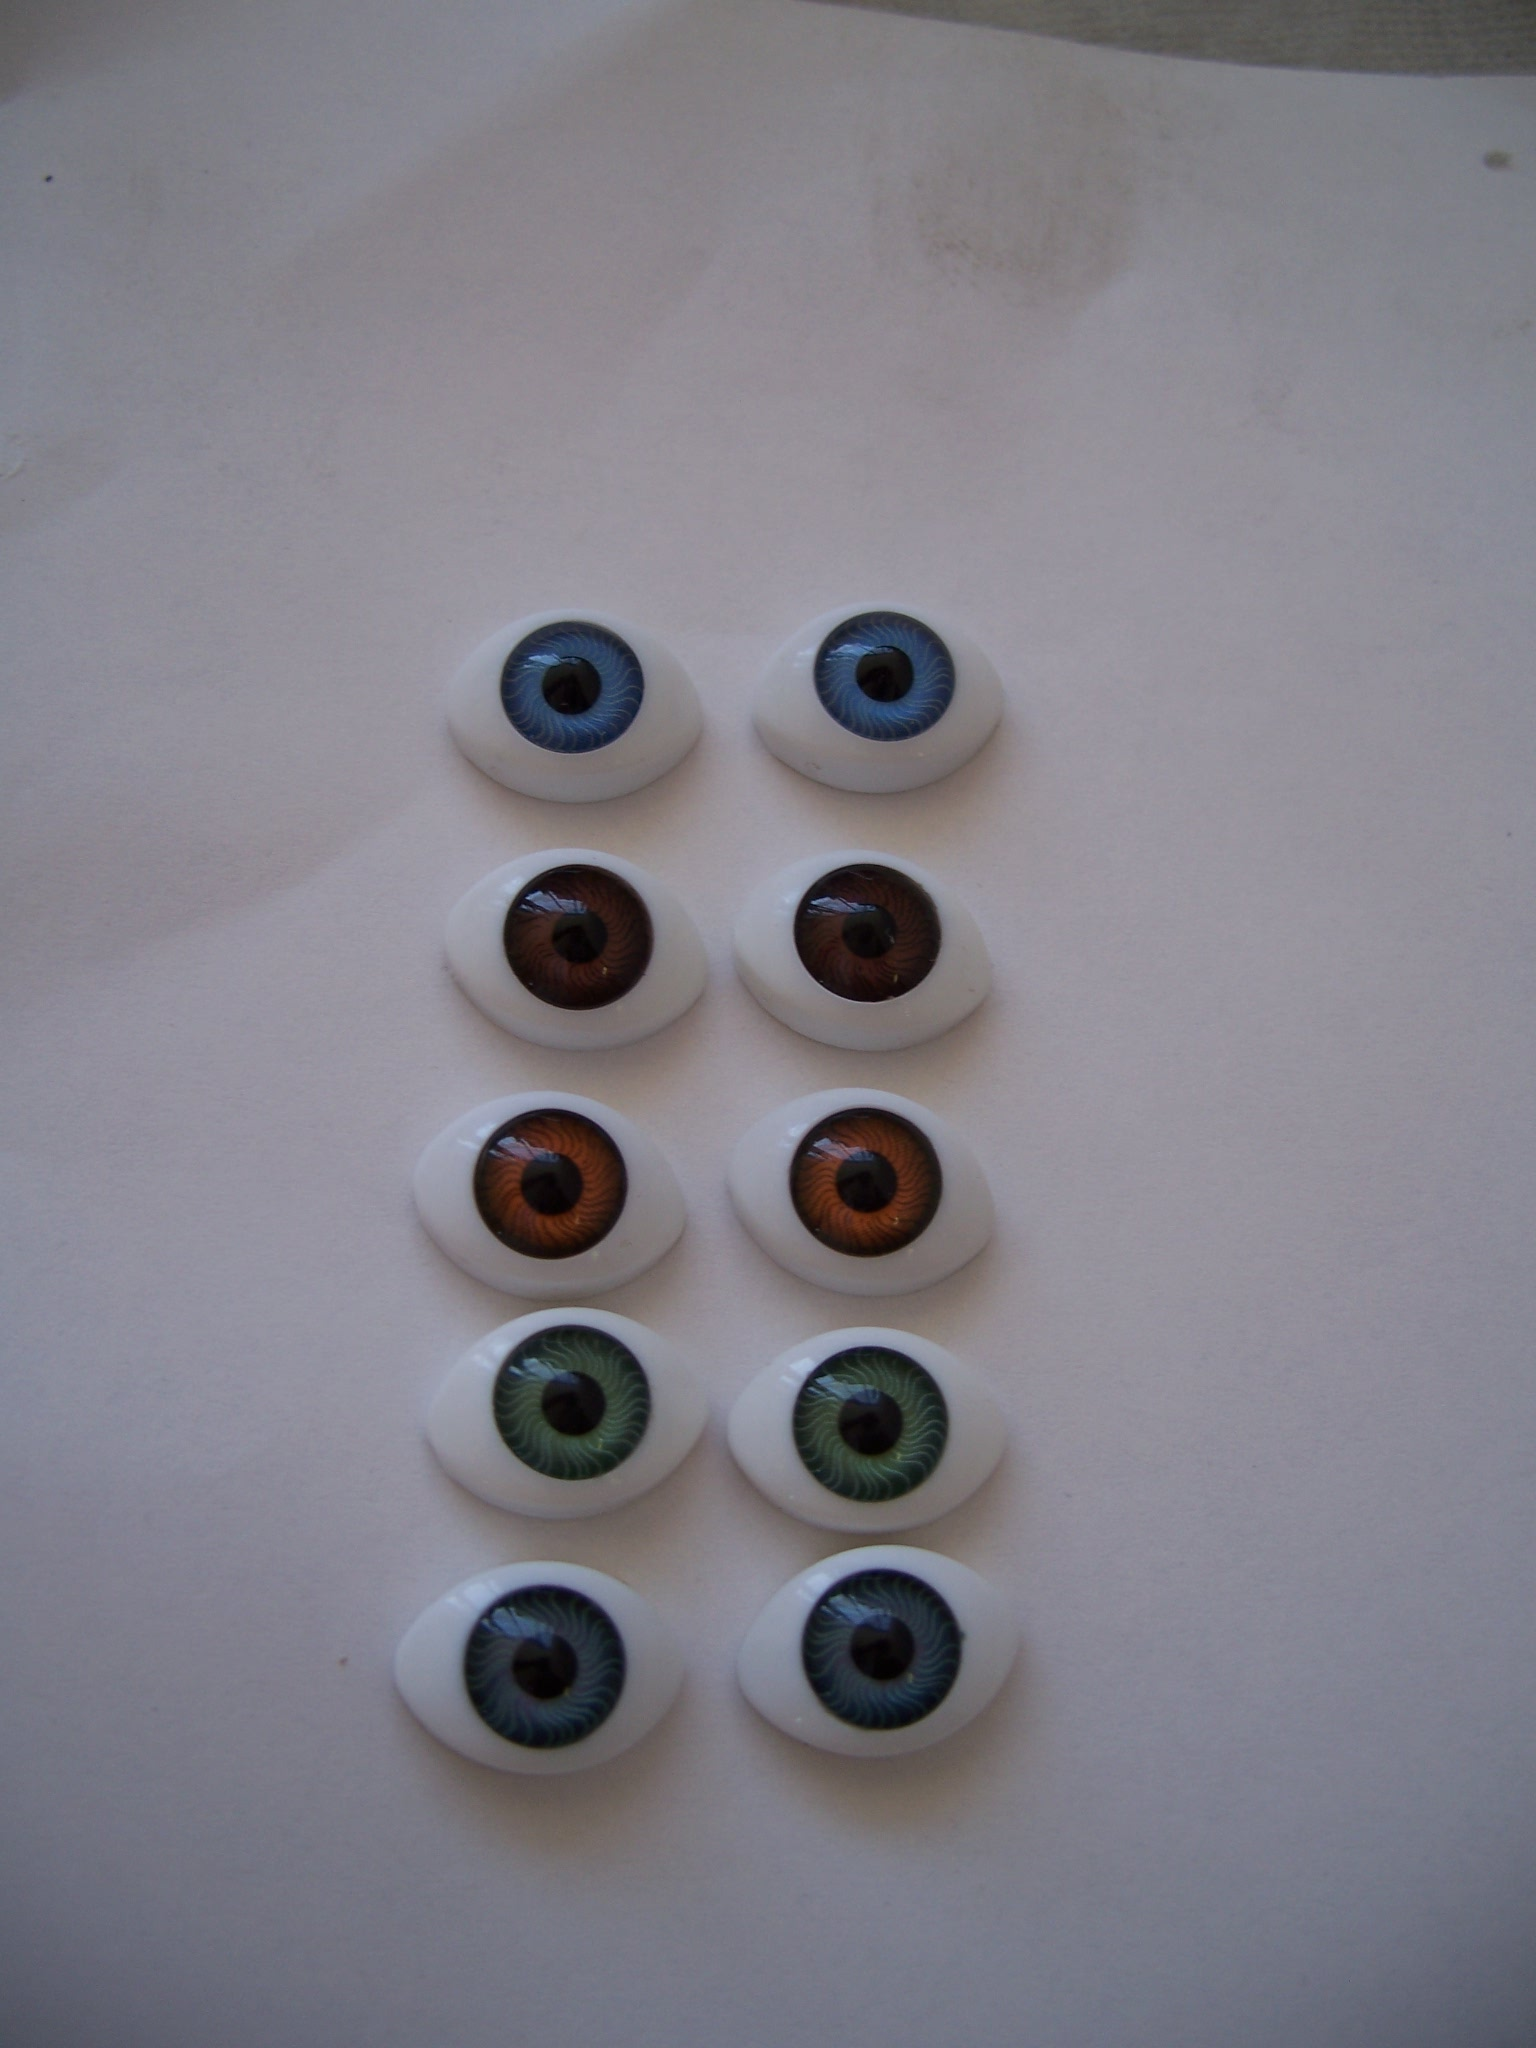 Standard Acrylic flat backed eyes